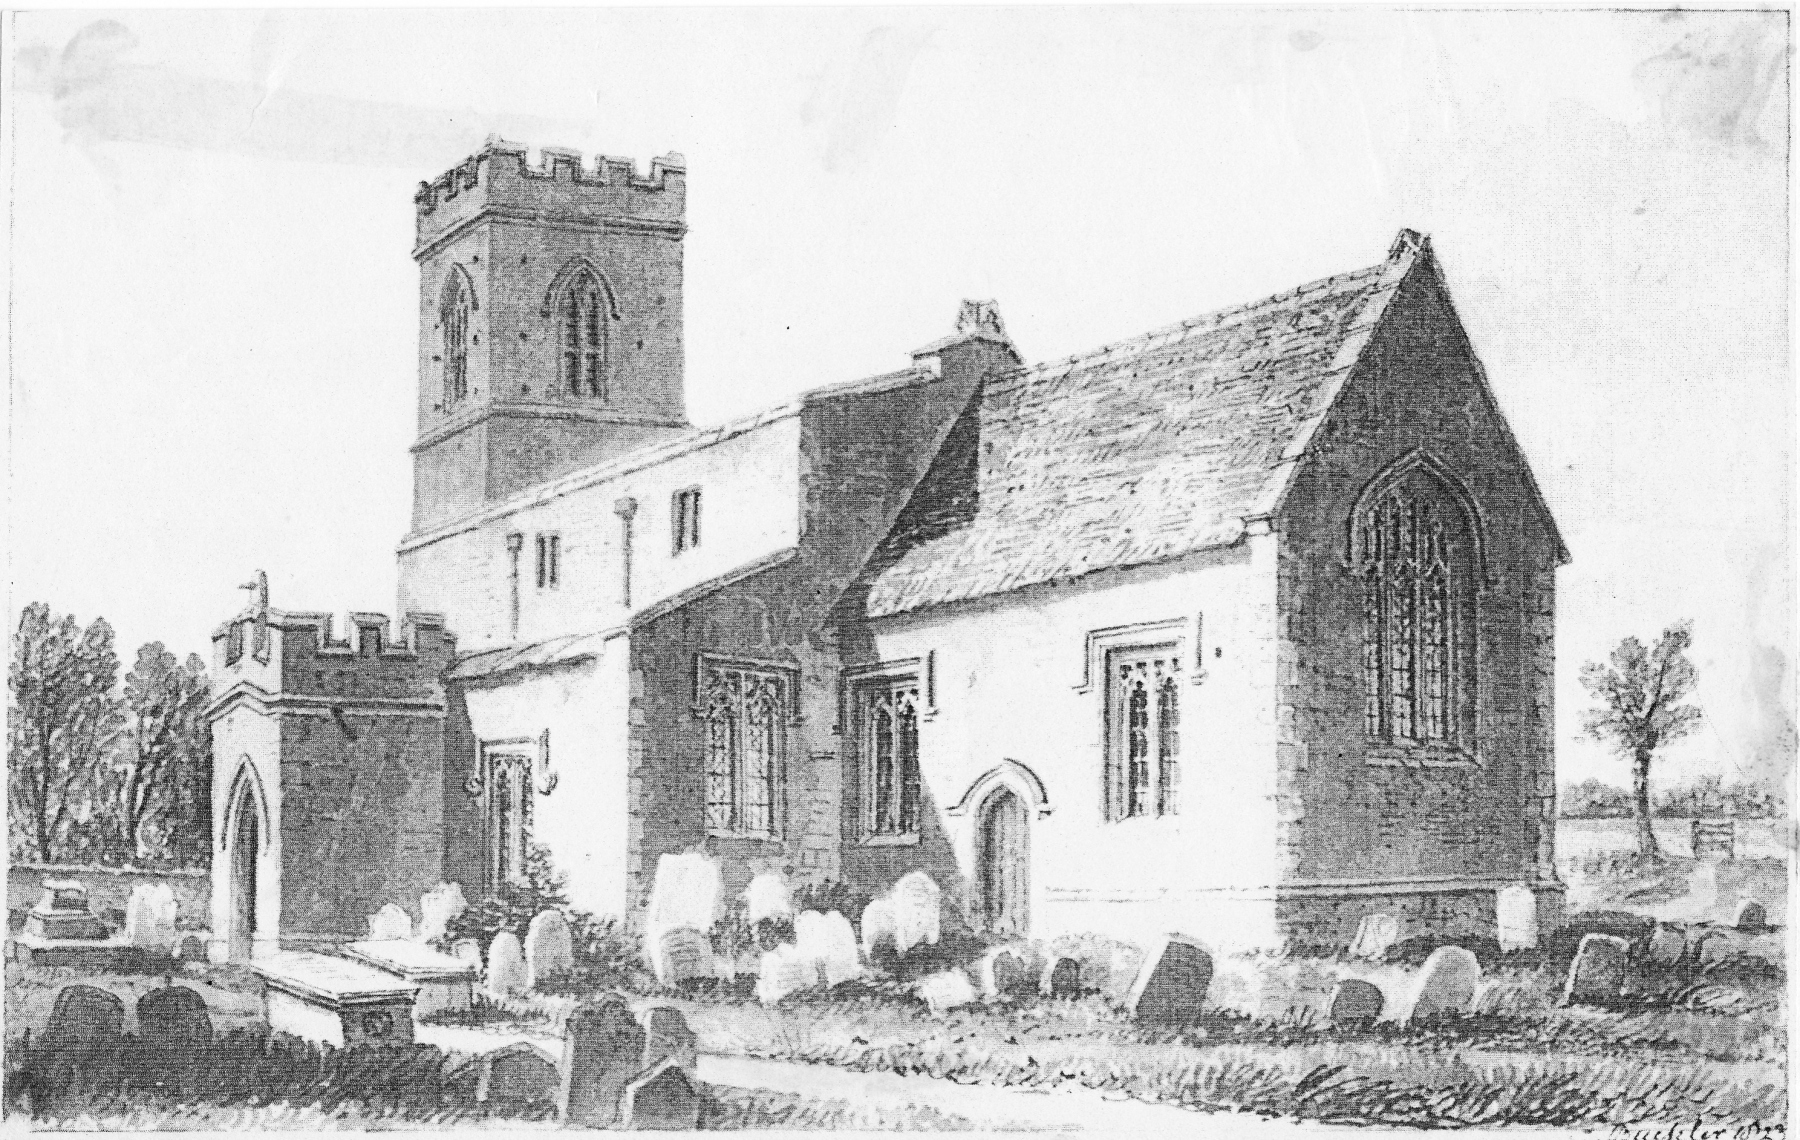 1823 South east view of Westcote Barton Church, Oxfordshire. Drawing by J C Buckler.